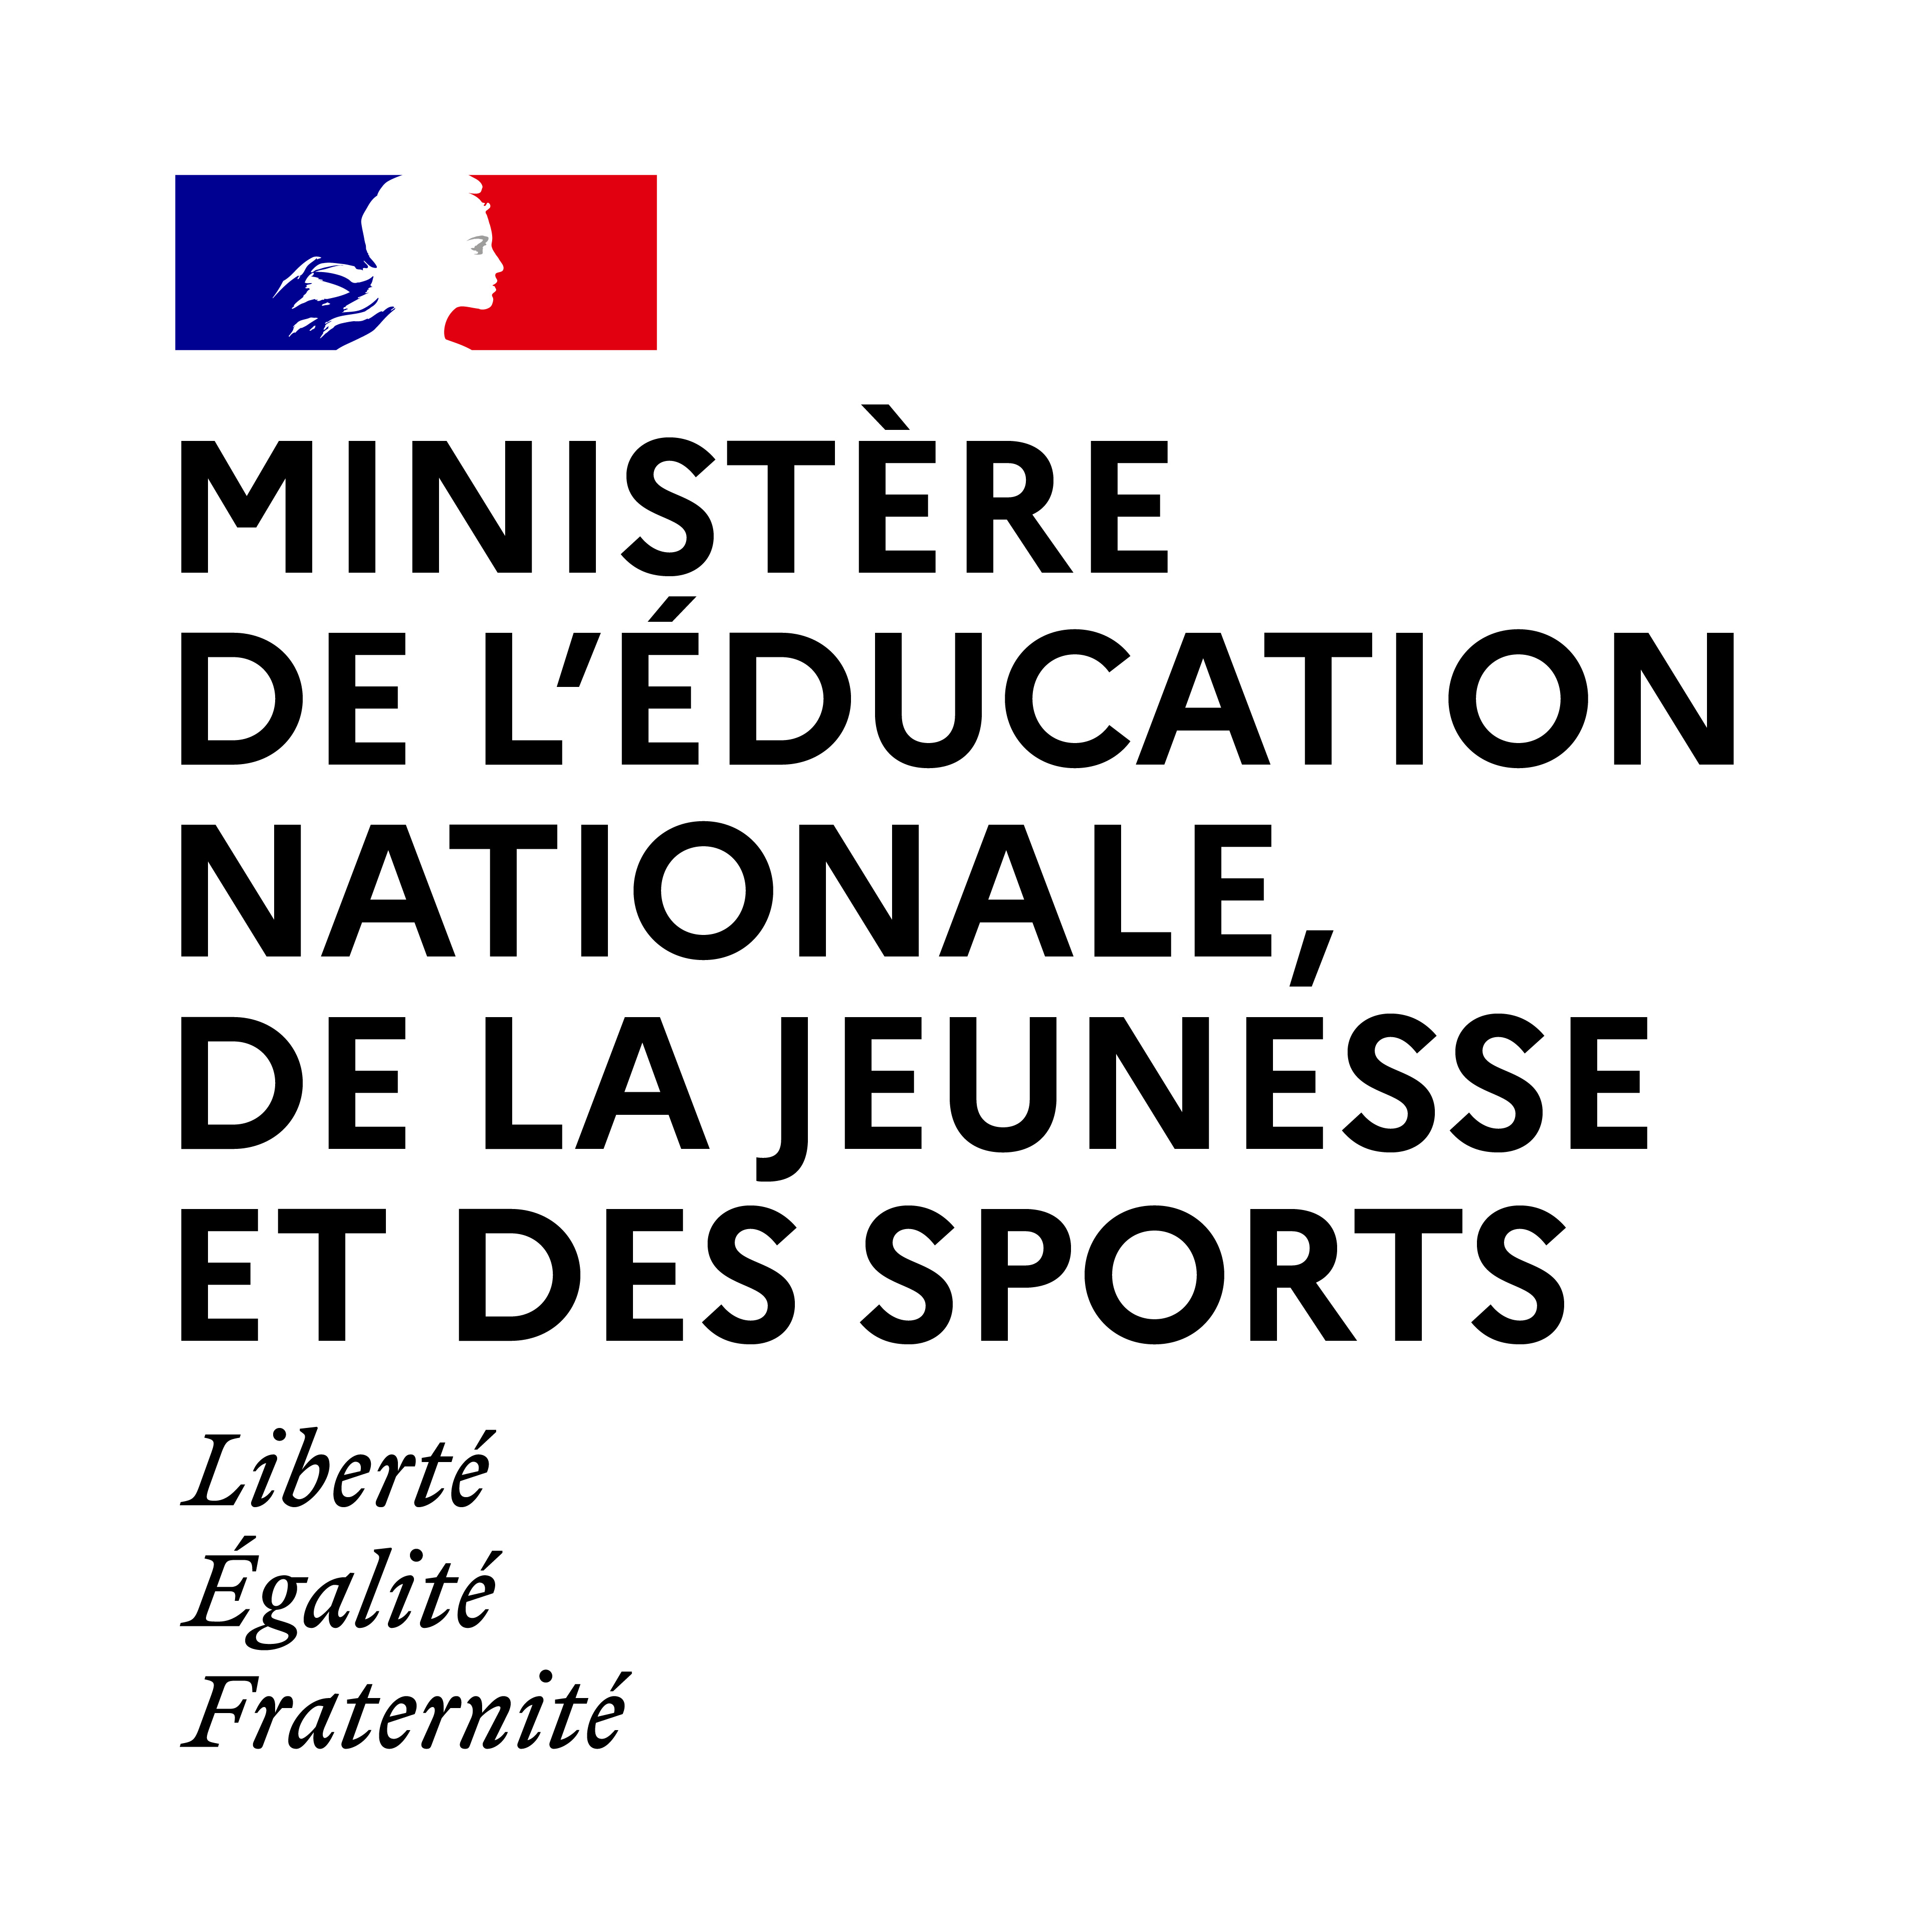 Ministere Education Nationale Jeunesse Sports